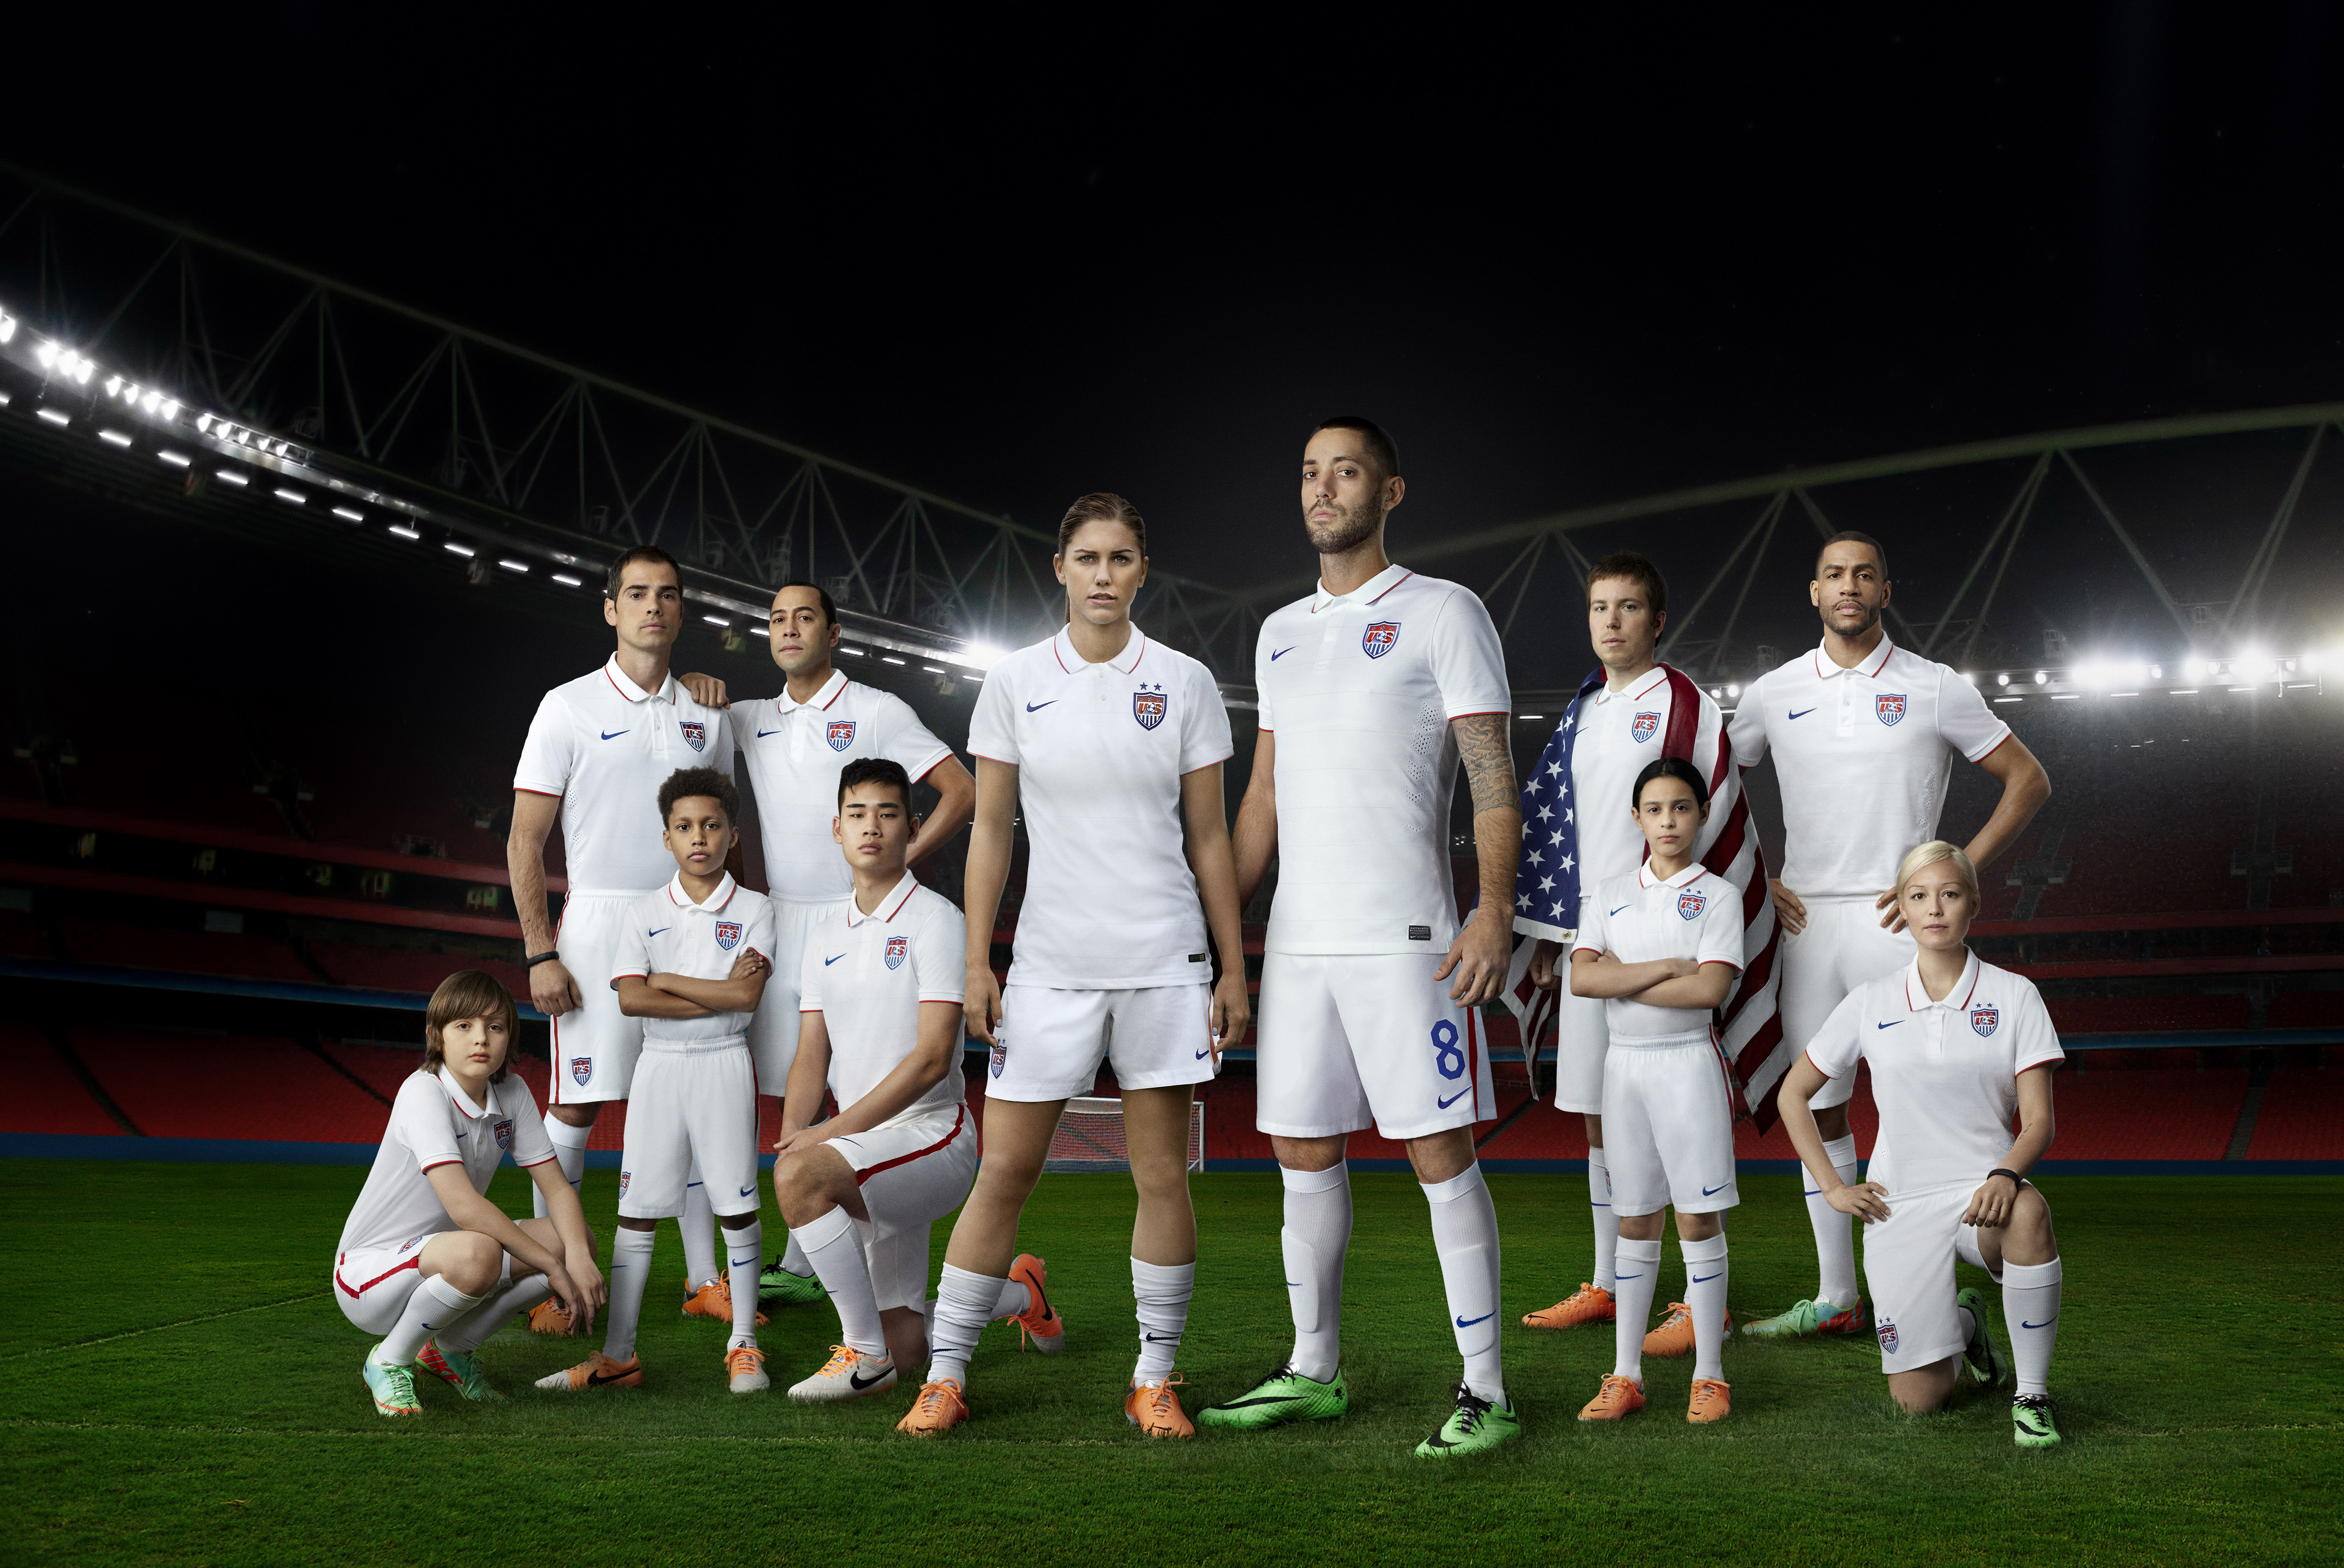 U.S. Unveils 2014 National Team Kit with Nike Soccer - Nike News